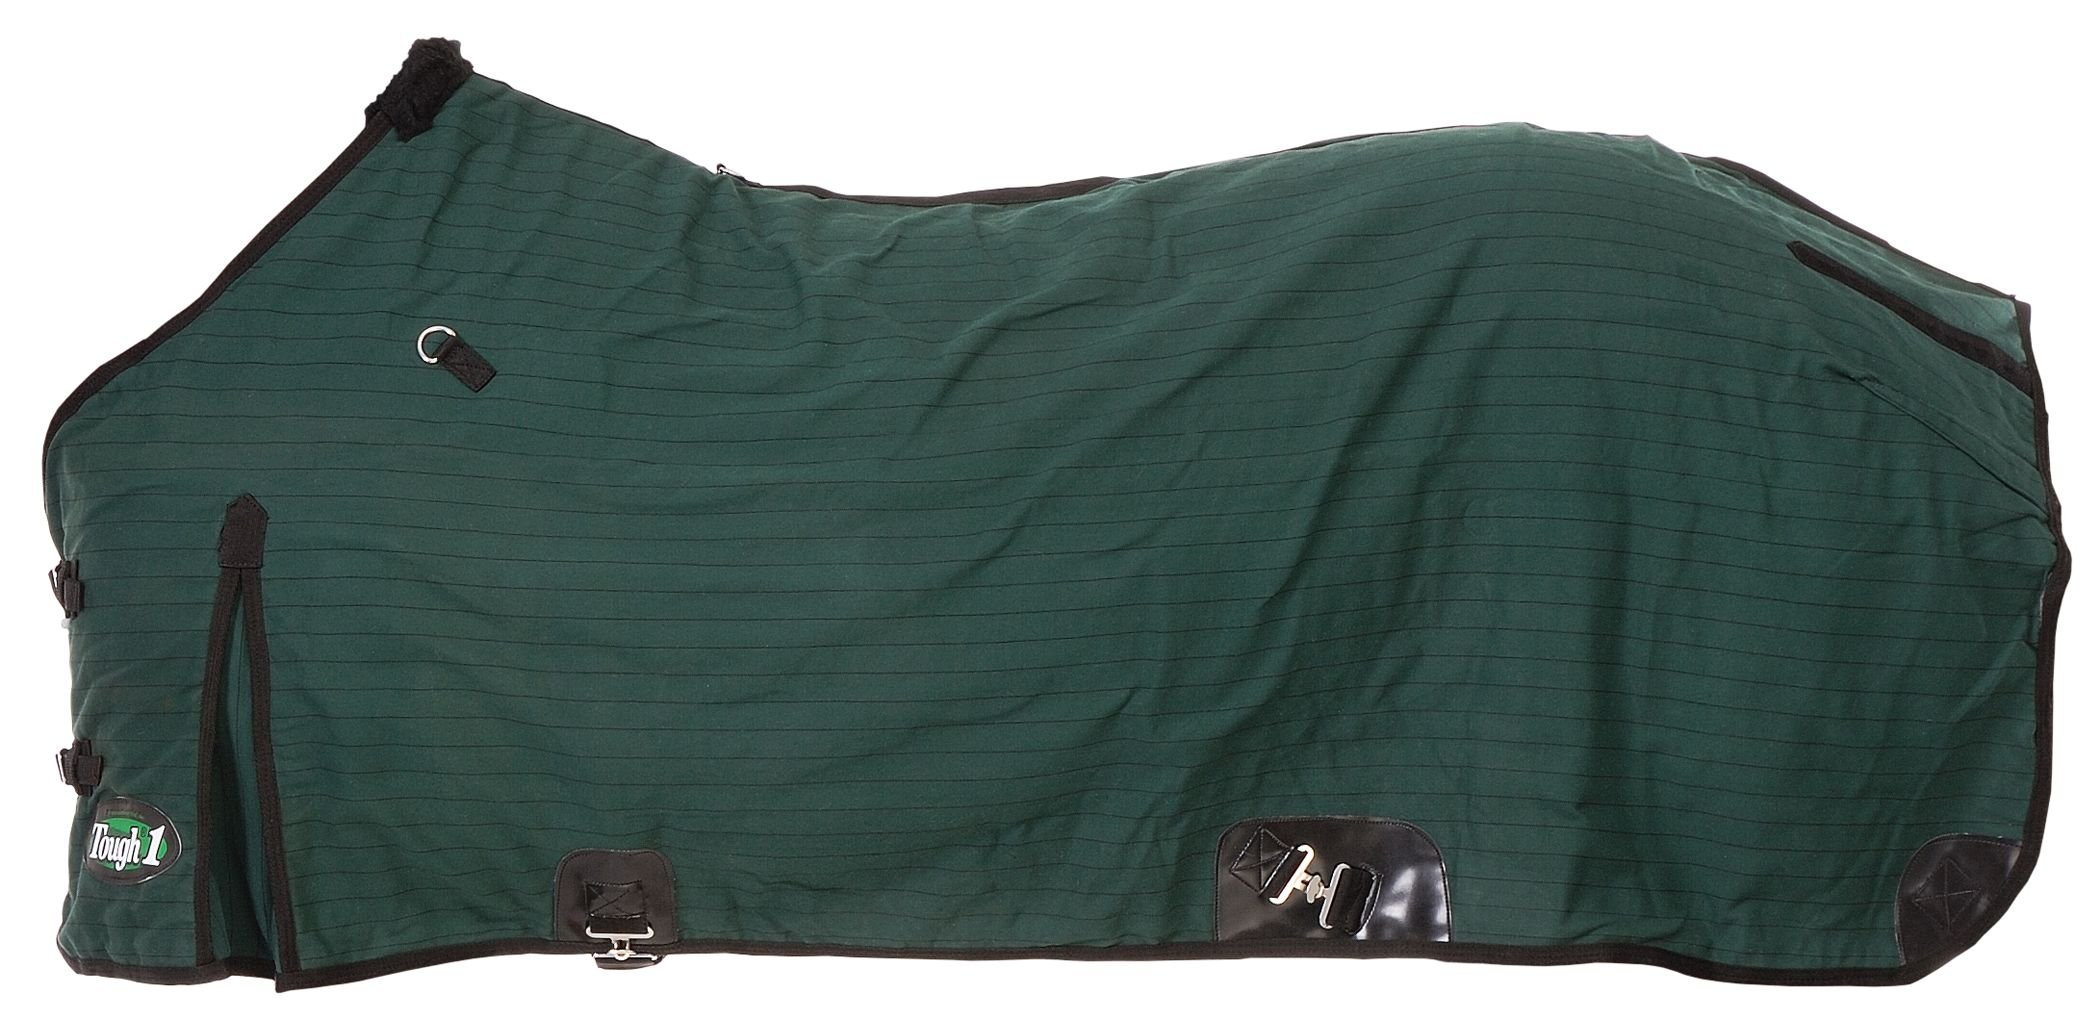 Tough 1 Storm-Buster West Coast Blanket, Green/Hunter, 78-Inch